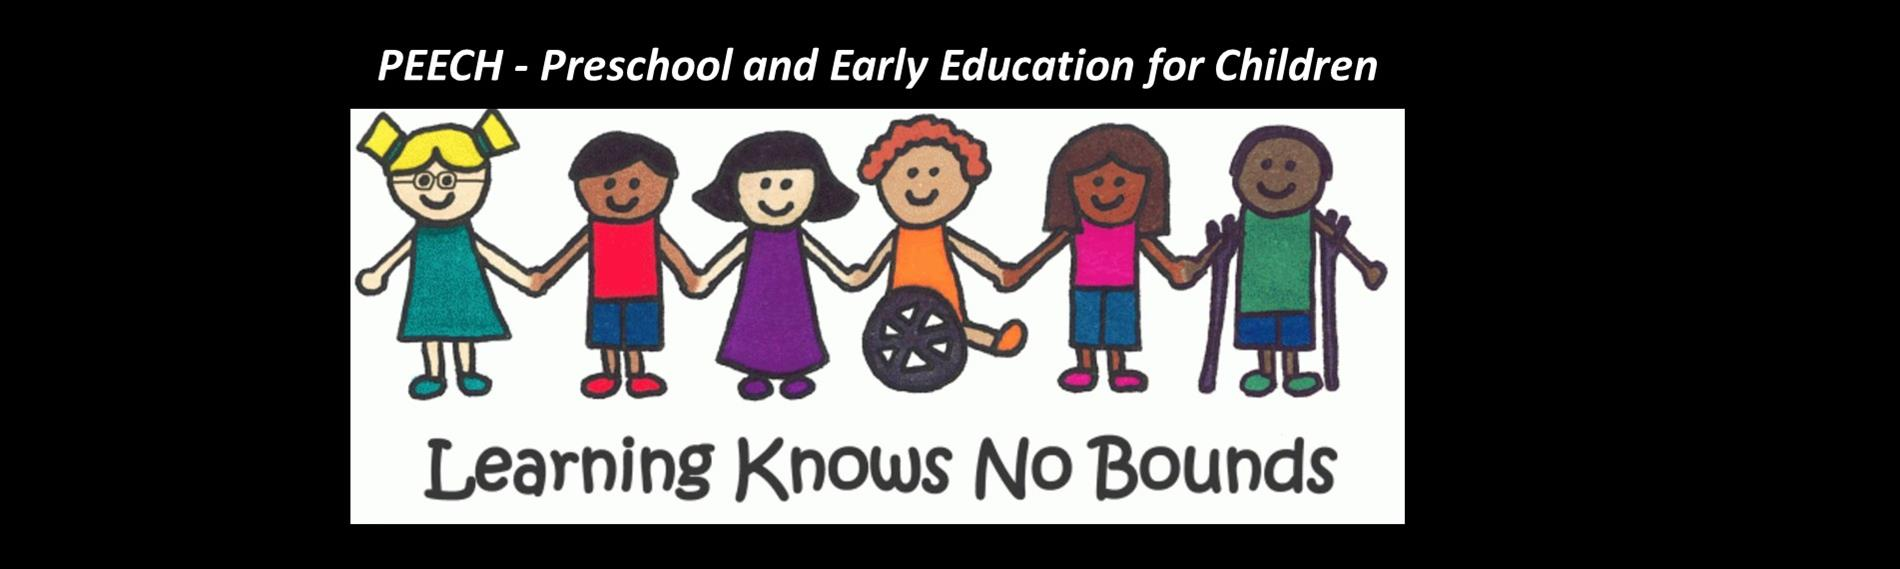 PEECH - Preschool and Early Education for Children